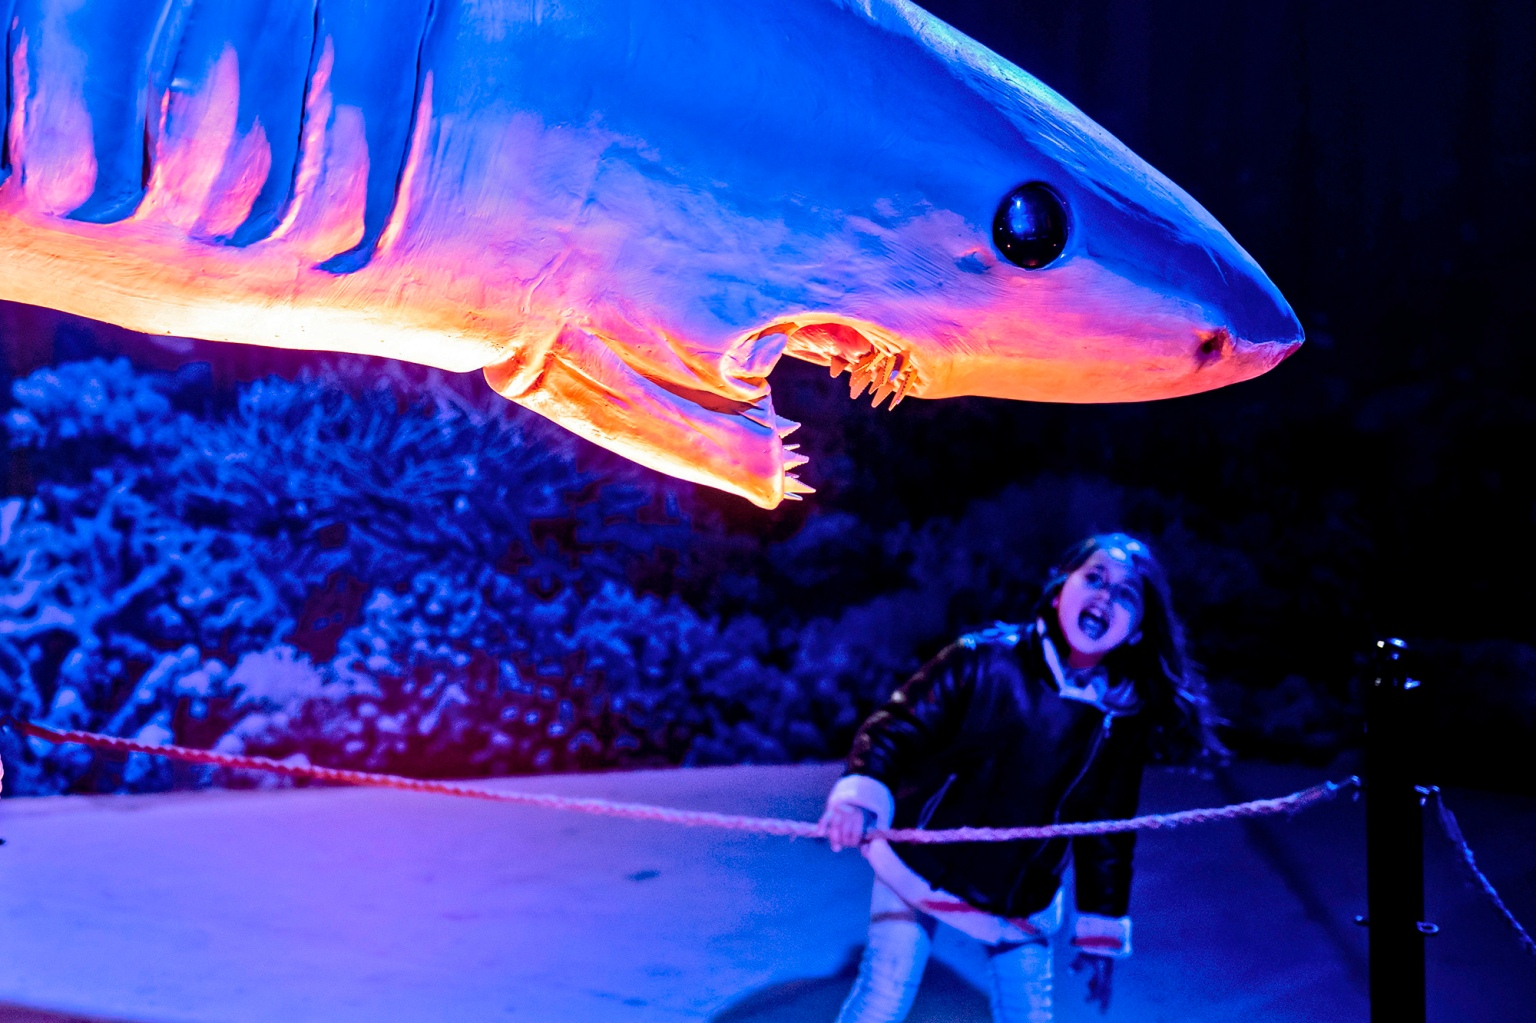 A child visits the Dinosaurs of the Ocean exhibit, an interactive display of robotic extinct creatures in real-life size, in the Cypriot capital Nicosia on Feb. 6. (Iakovos Hatzistavrou/AFP/Getty Images)